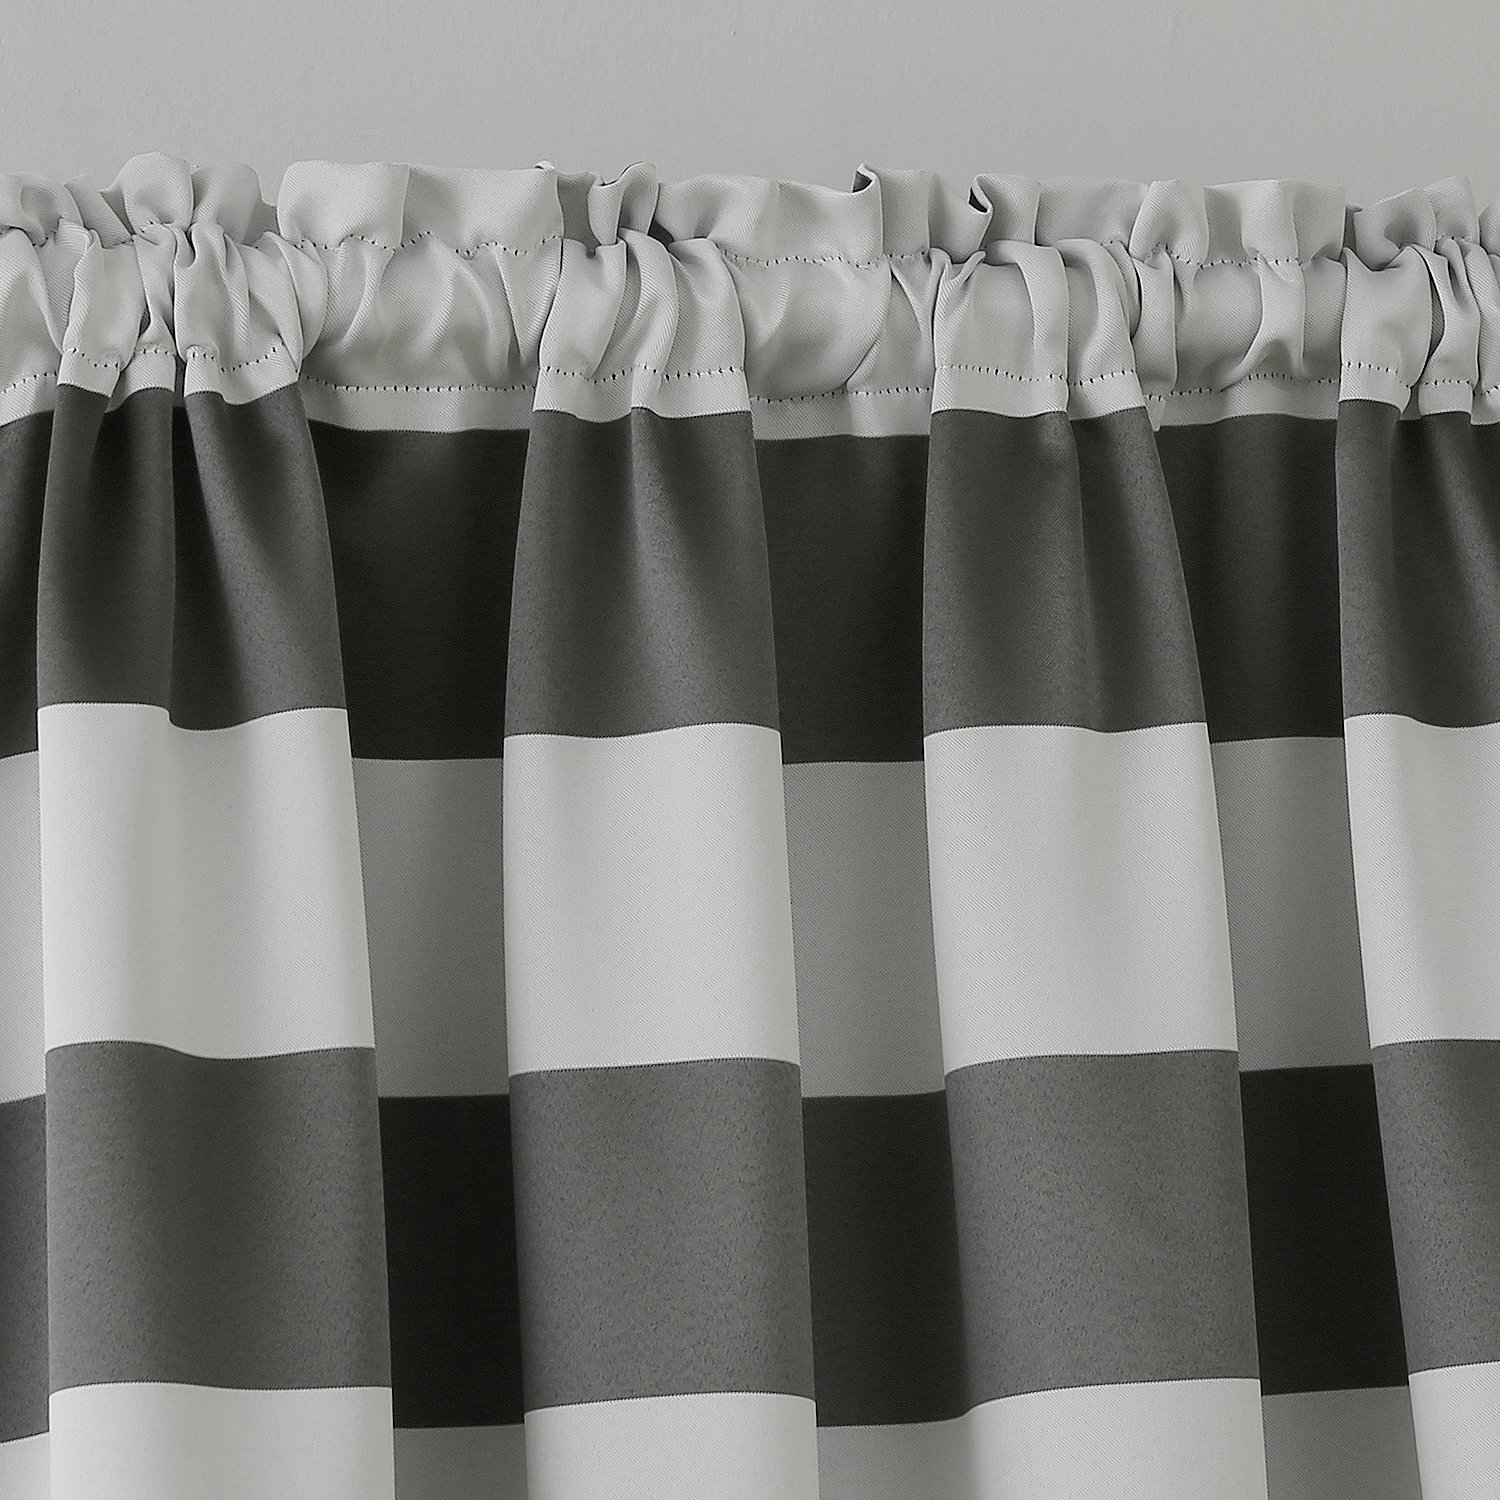 Home Kitchen Deconovo Striped Blackout Curtains Rod Pocket Black And Greyish White Striped Curtains For Living Room 42w X 84l Black 2 Panel Curtains Balloon Shades